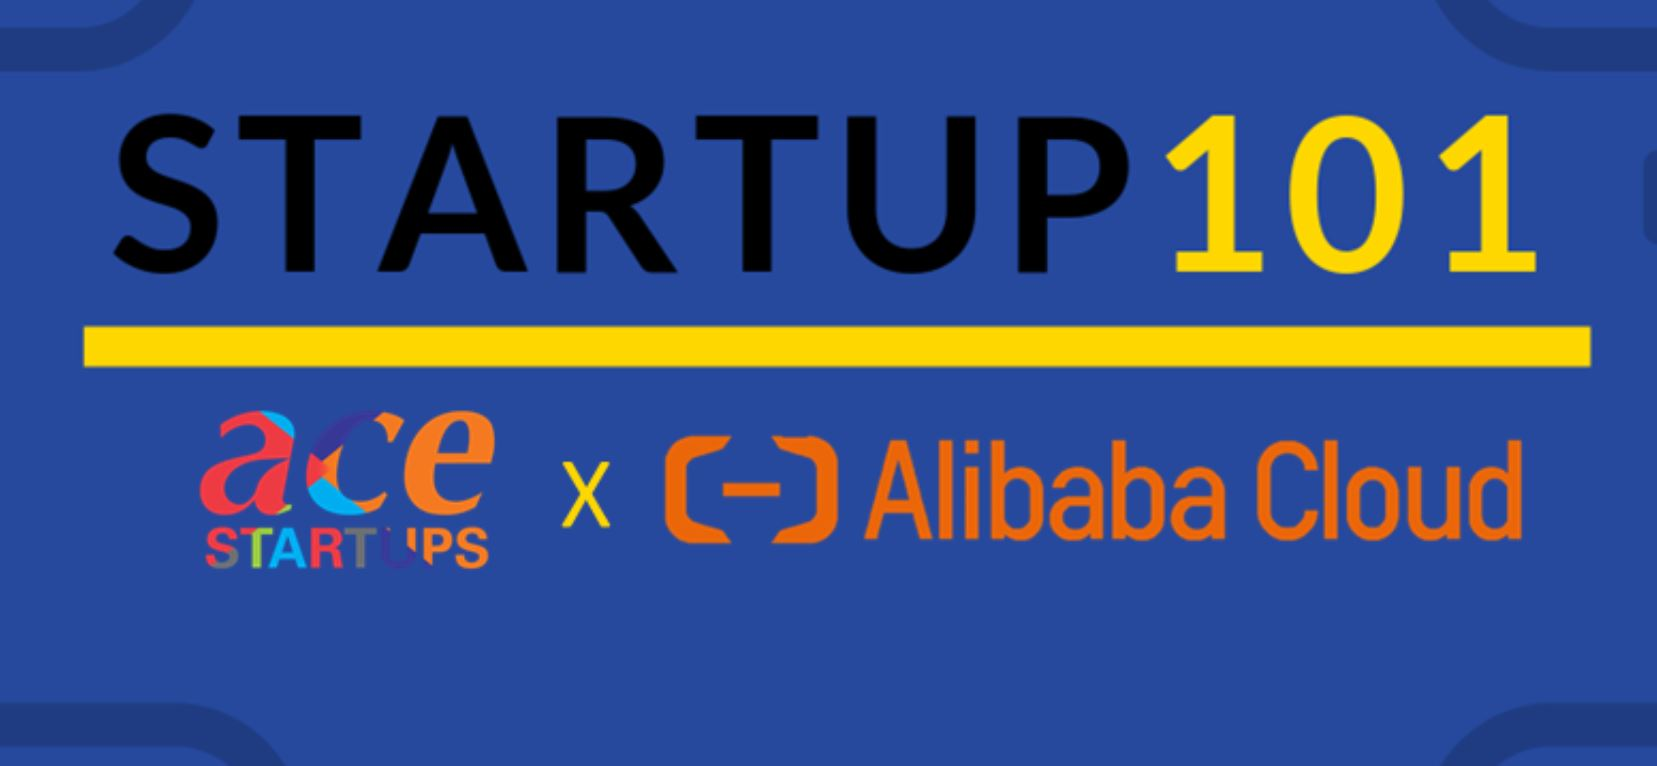 Startup 101: Cloud Solutions